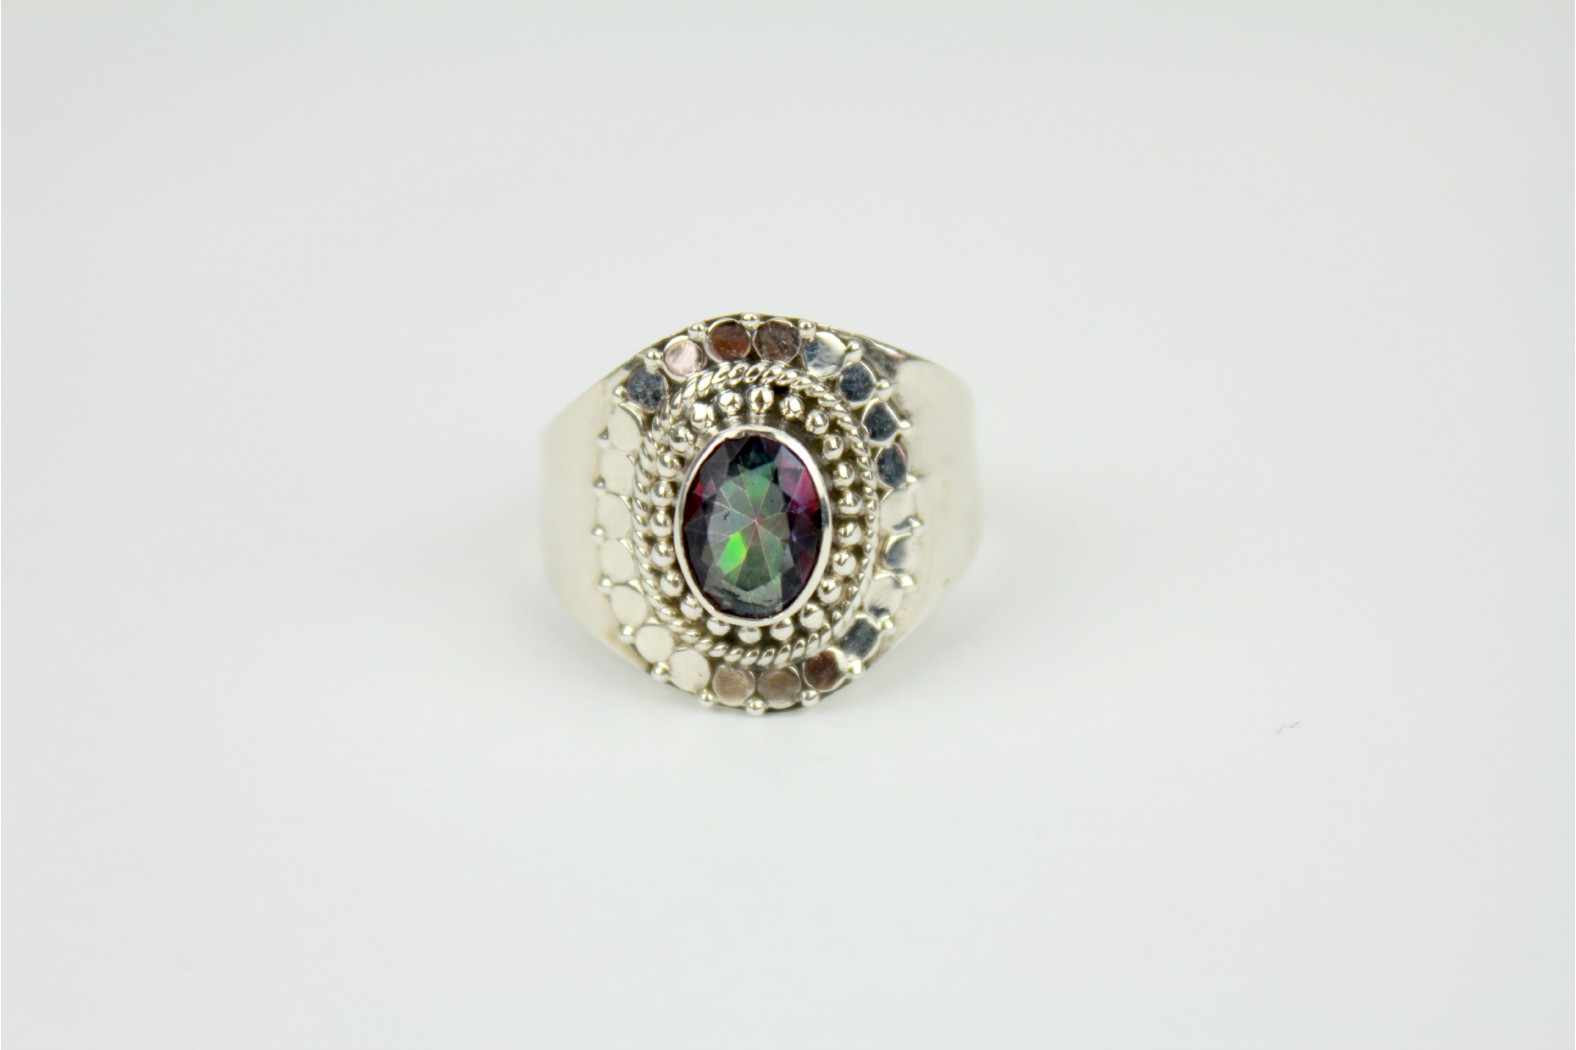 Chunky high polish Mystic Topaz silver set detailing size 10 or T